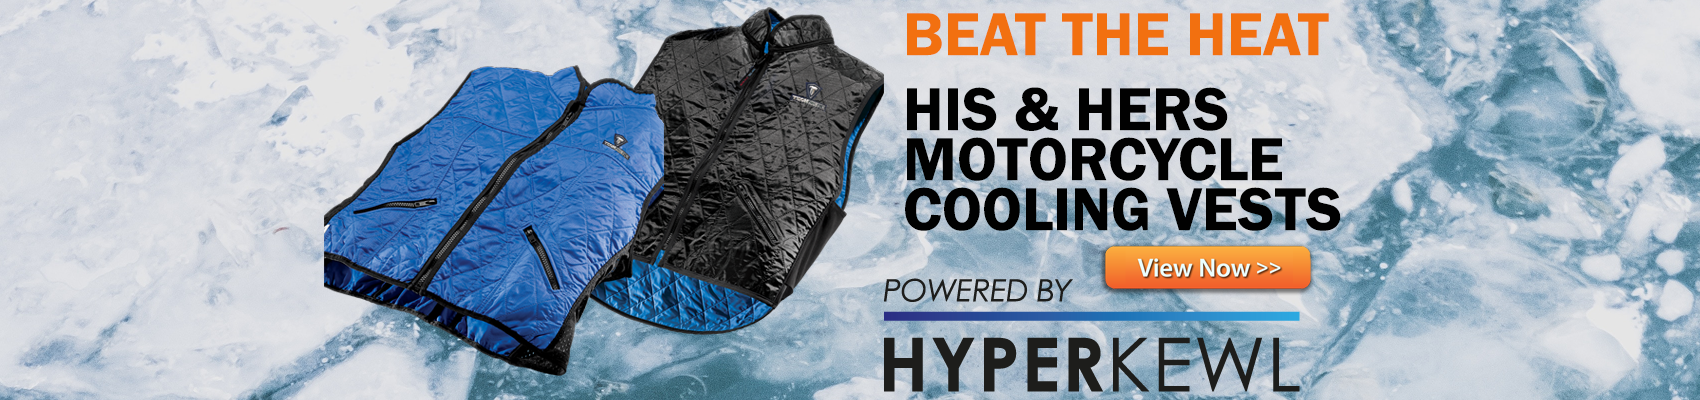 Cooling Motorcycle Vests